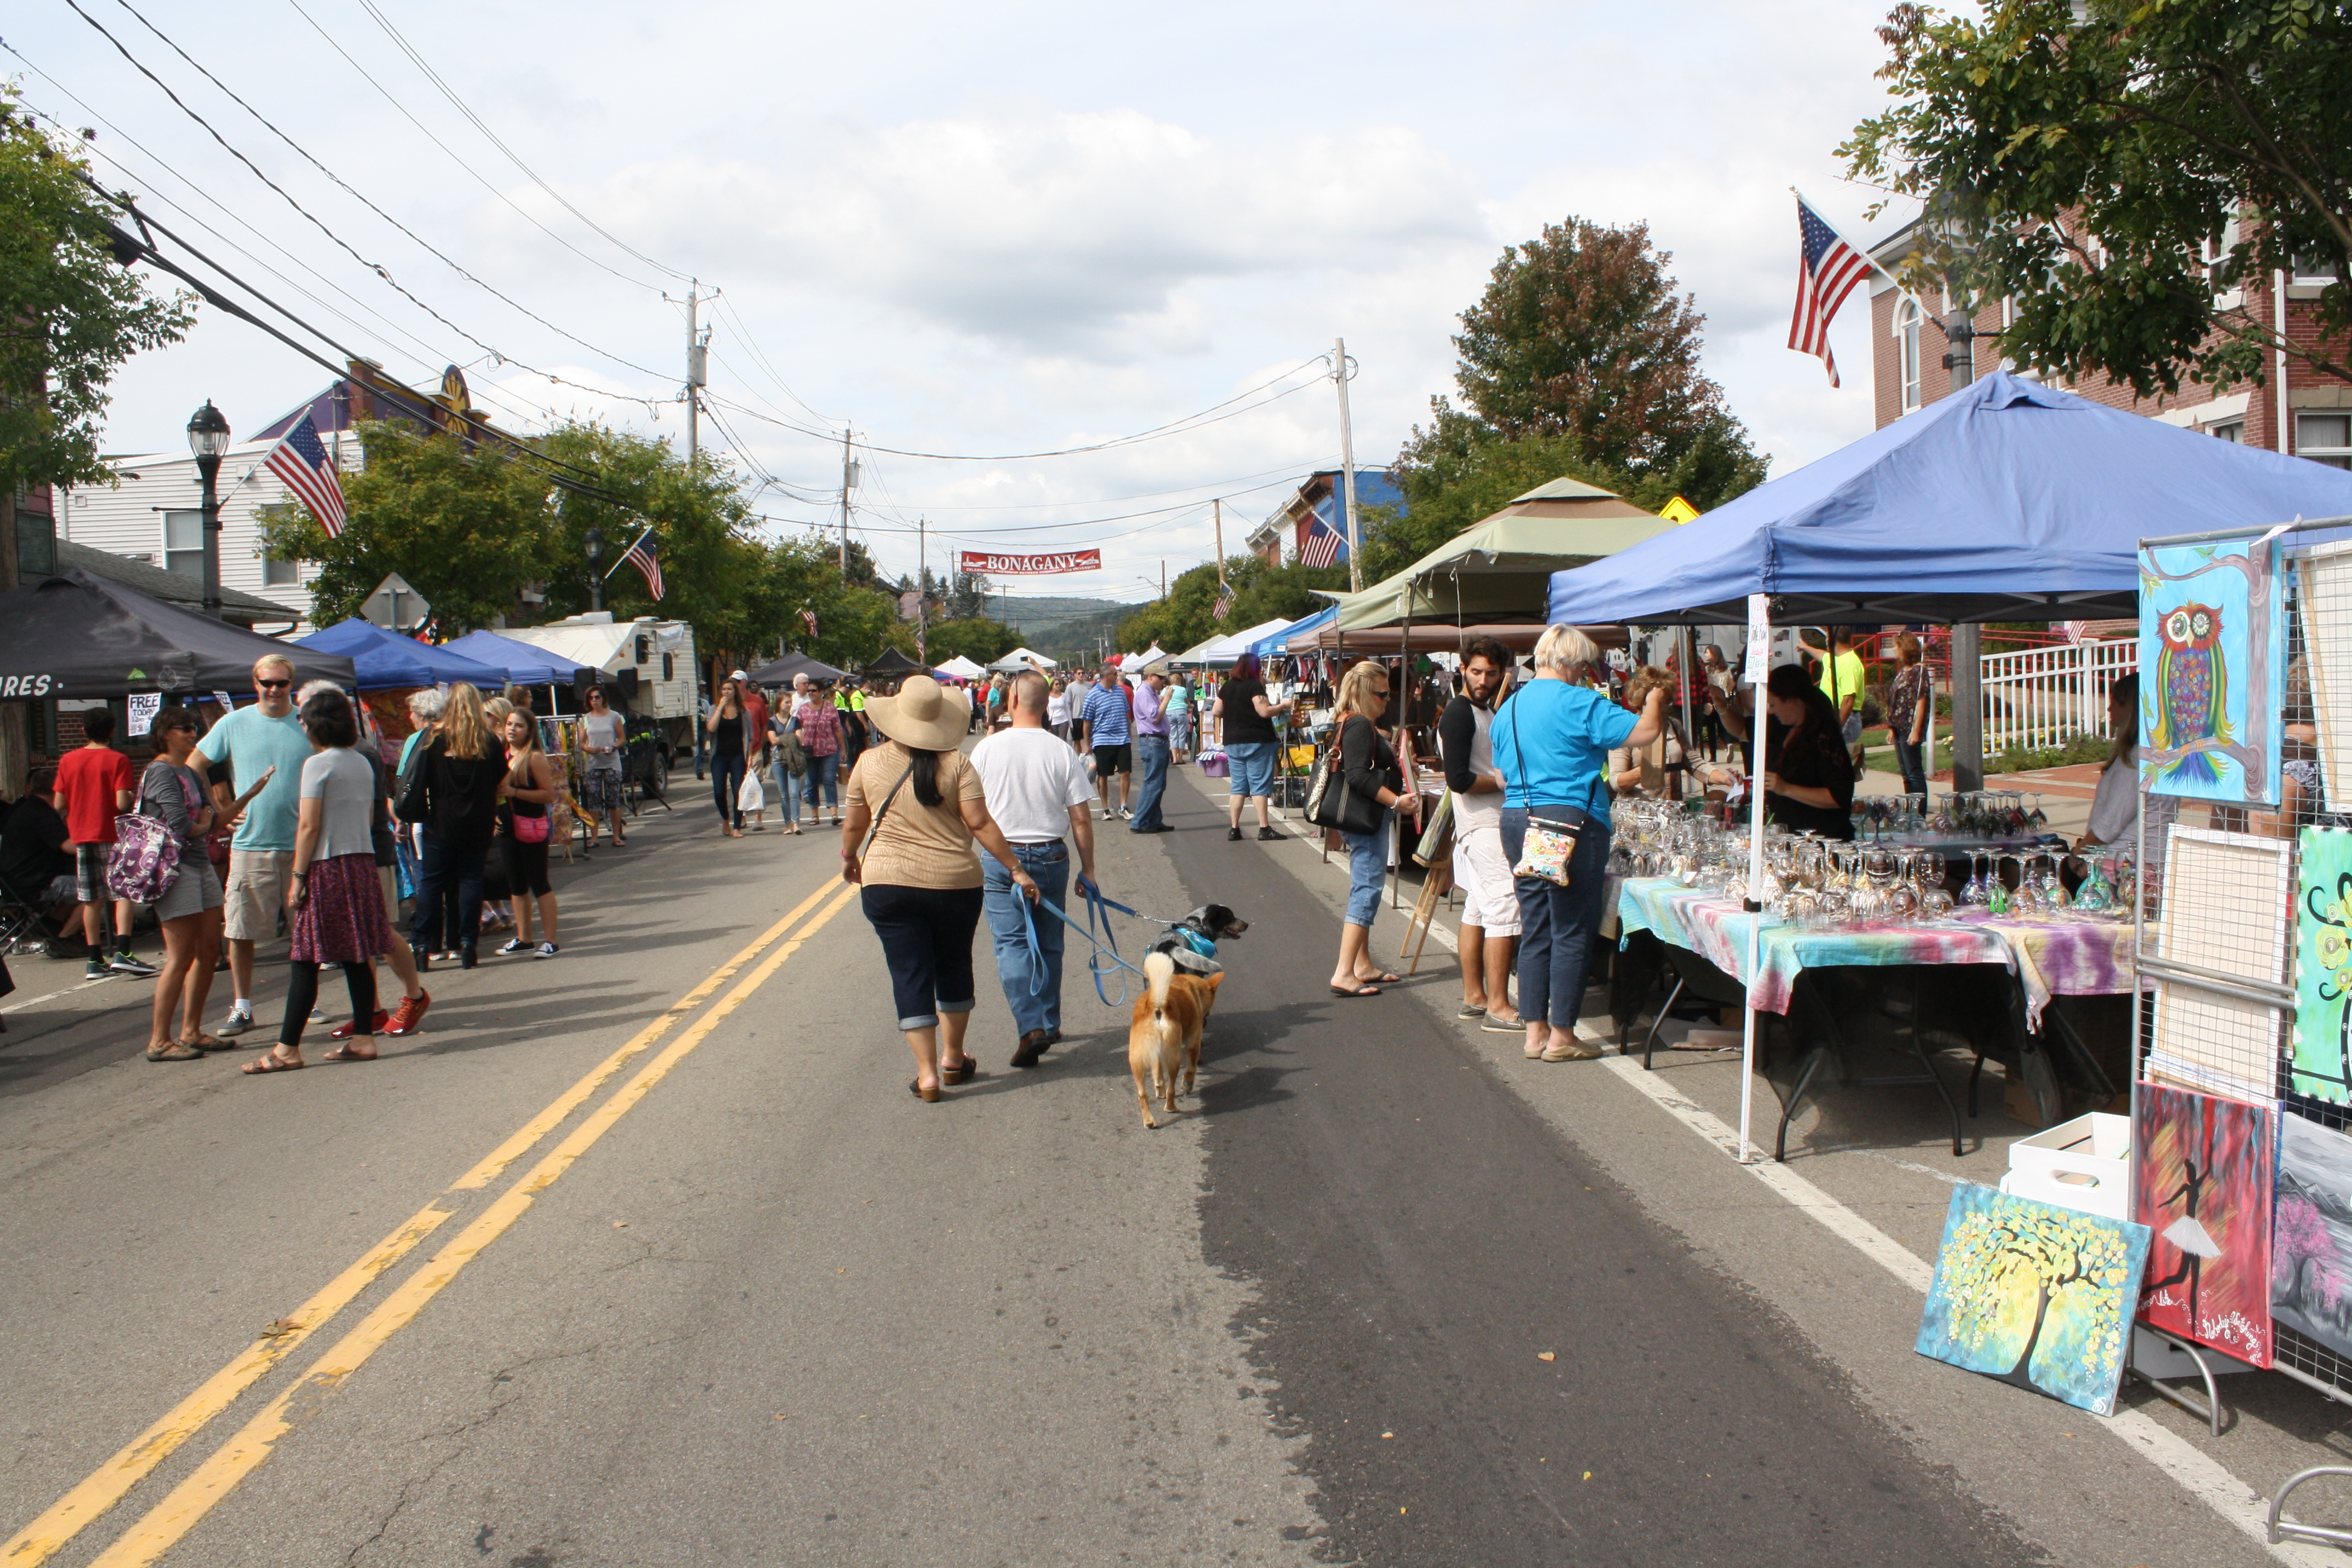 Booming Bonagany- Allegany Residents, Bonaventure students and families browse the vendors' tents down Main Street last fall.